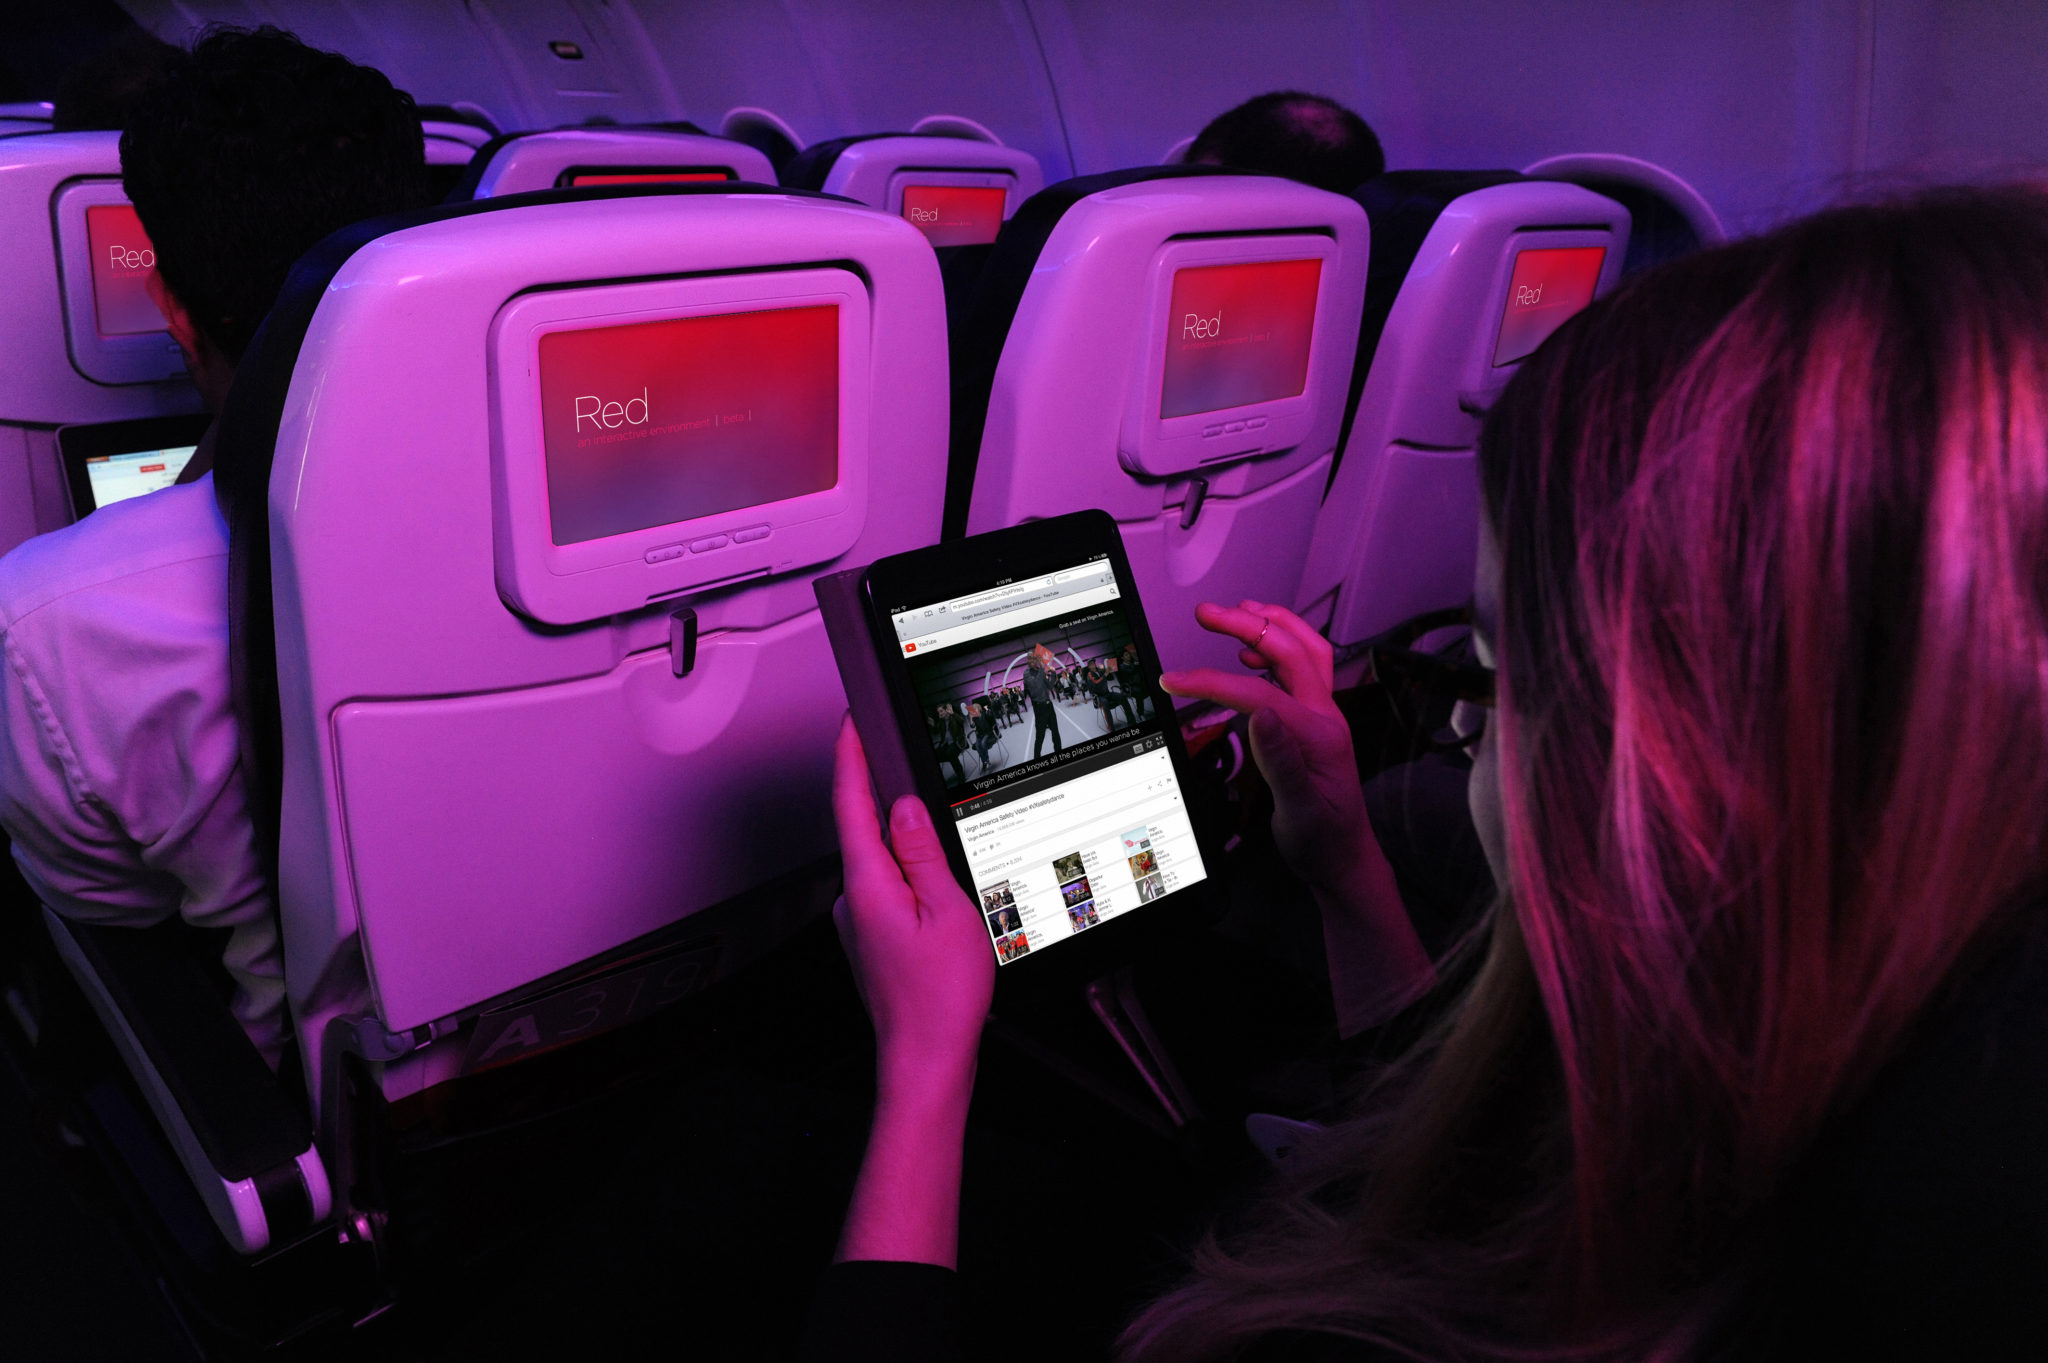 Inmarsat and Virgin America are siding on the